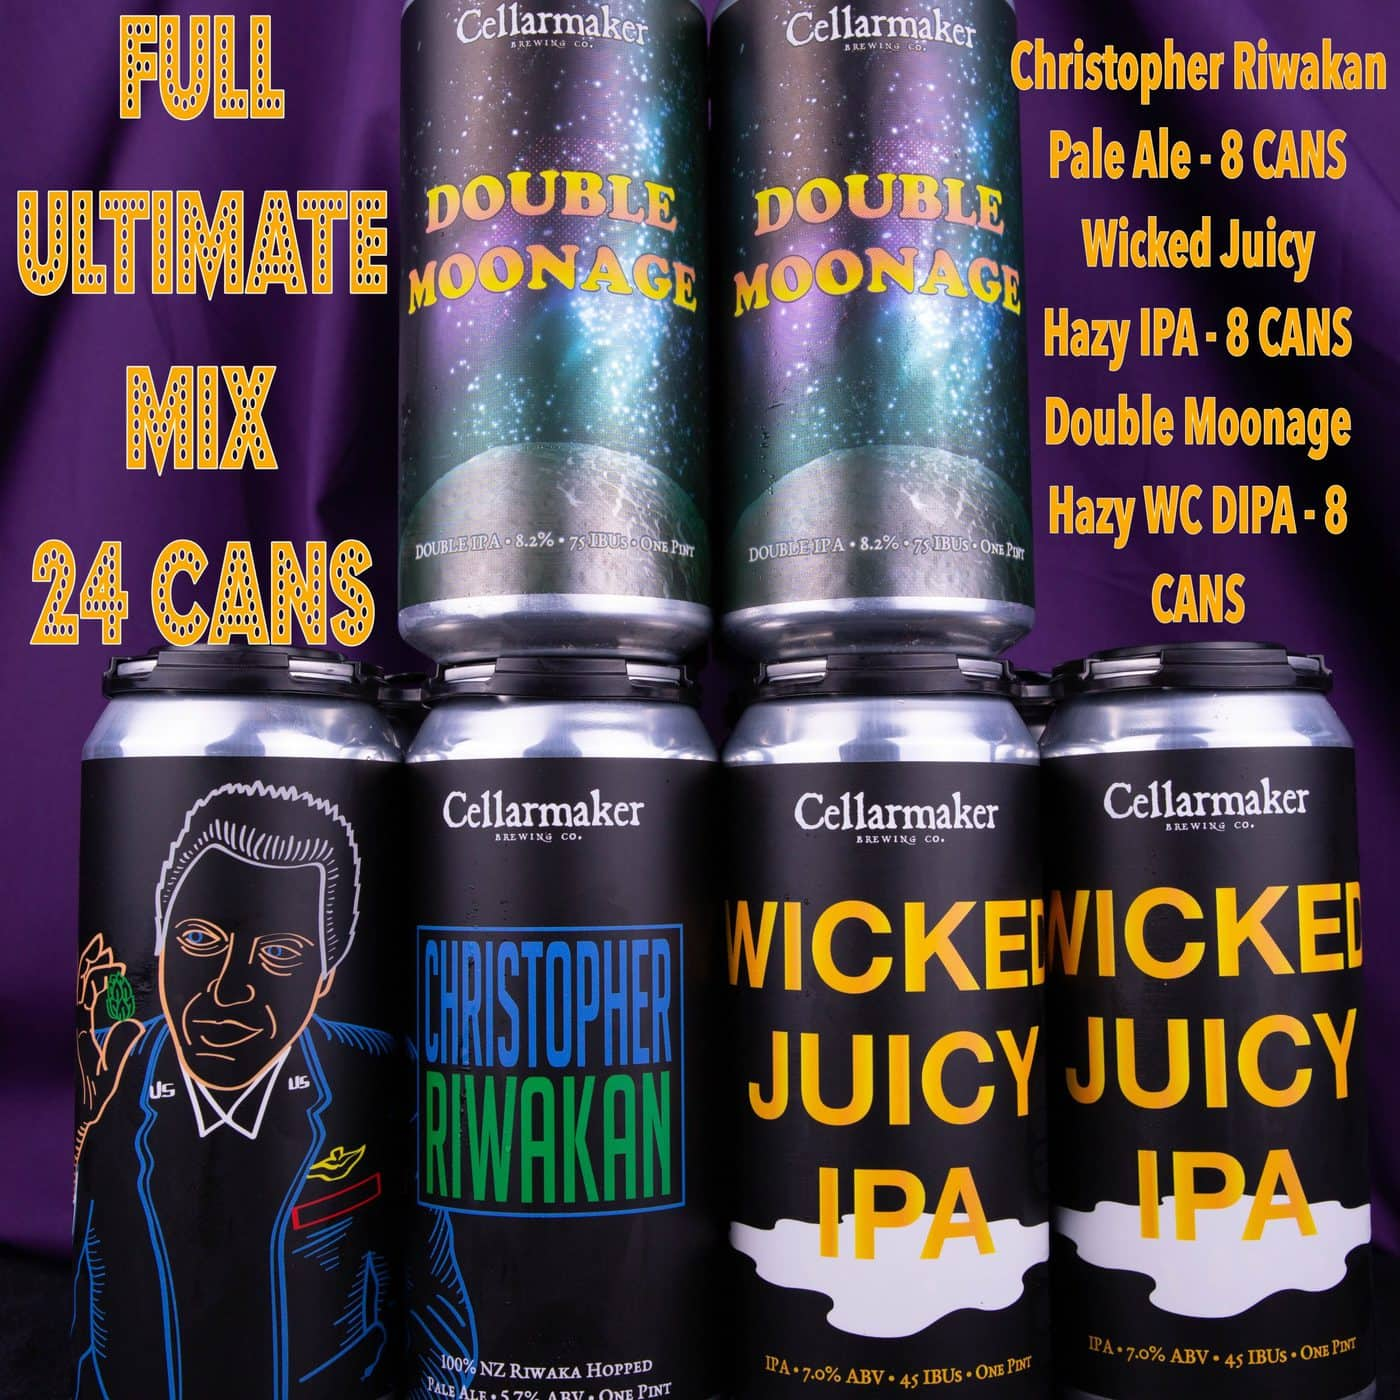 FULL CASE 24 CANS – Ultimate Mix- 8 Christopher Riwakan Pale Ale, 8 Wicked Juicy IPA And 8 Double Moonage DIPA … SHIPPING Out On TUESDAY 1/12 For NEXT DAY Delivery*